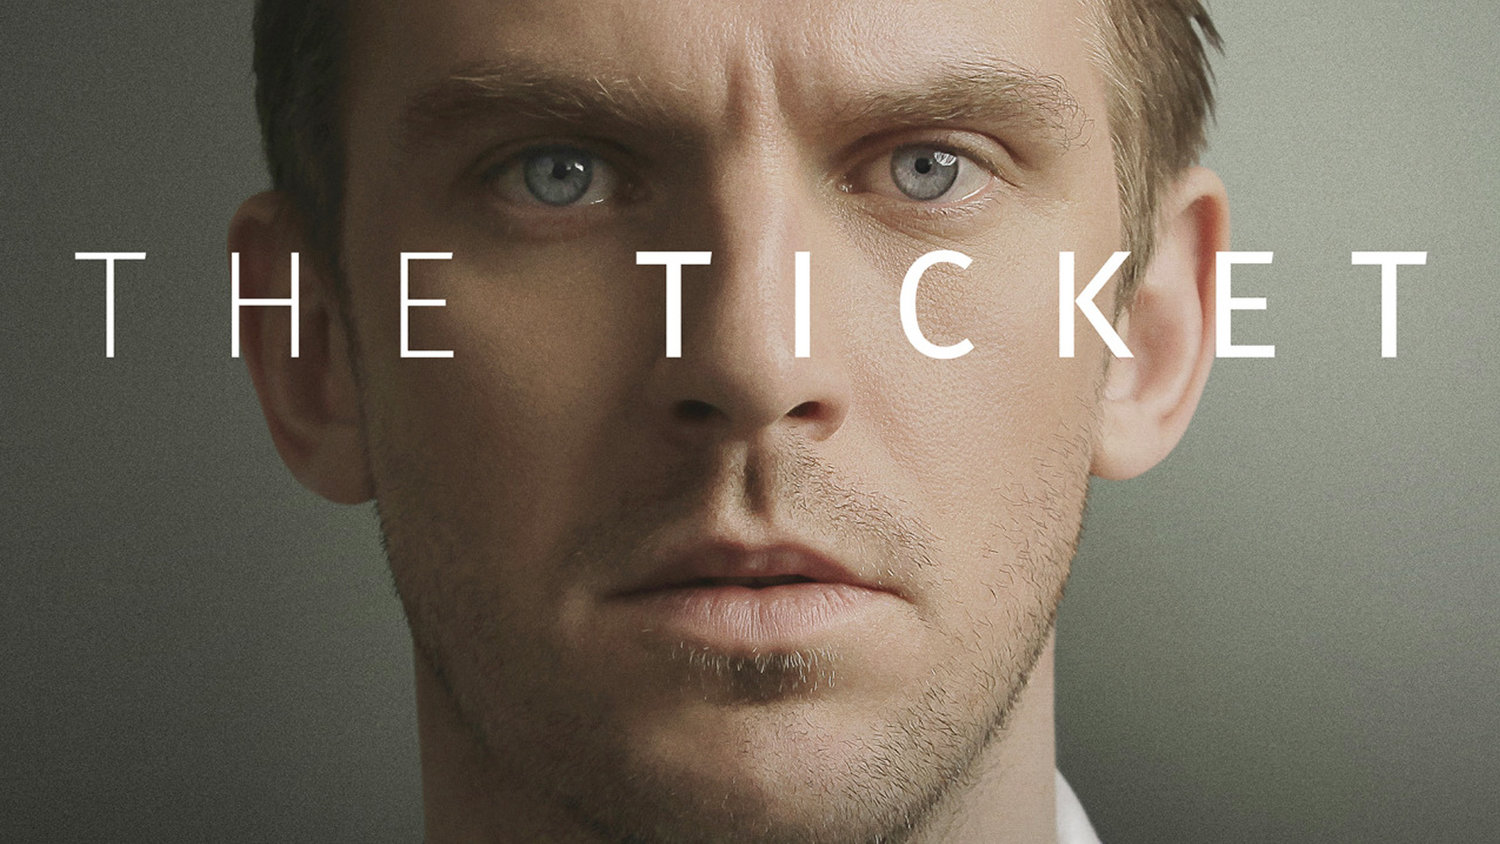 THE TICKET Trailer: Dan Stevens Was Blind But Now He Sees